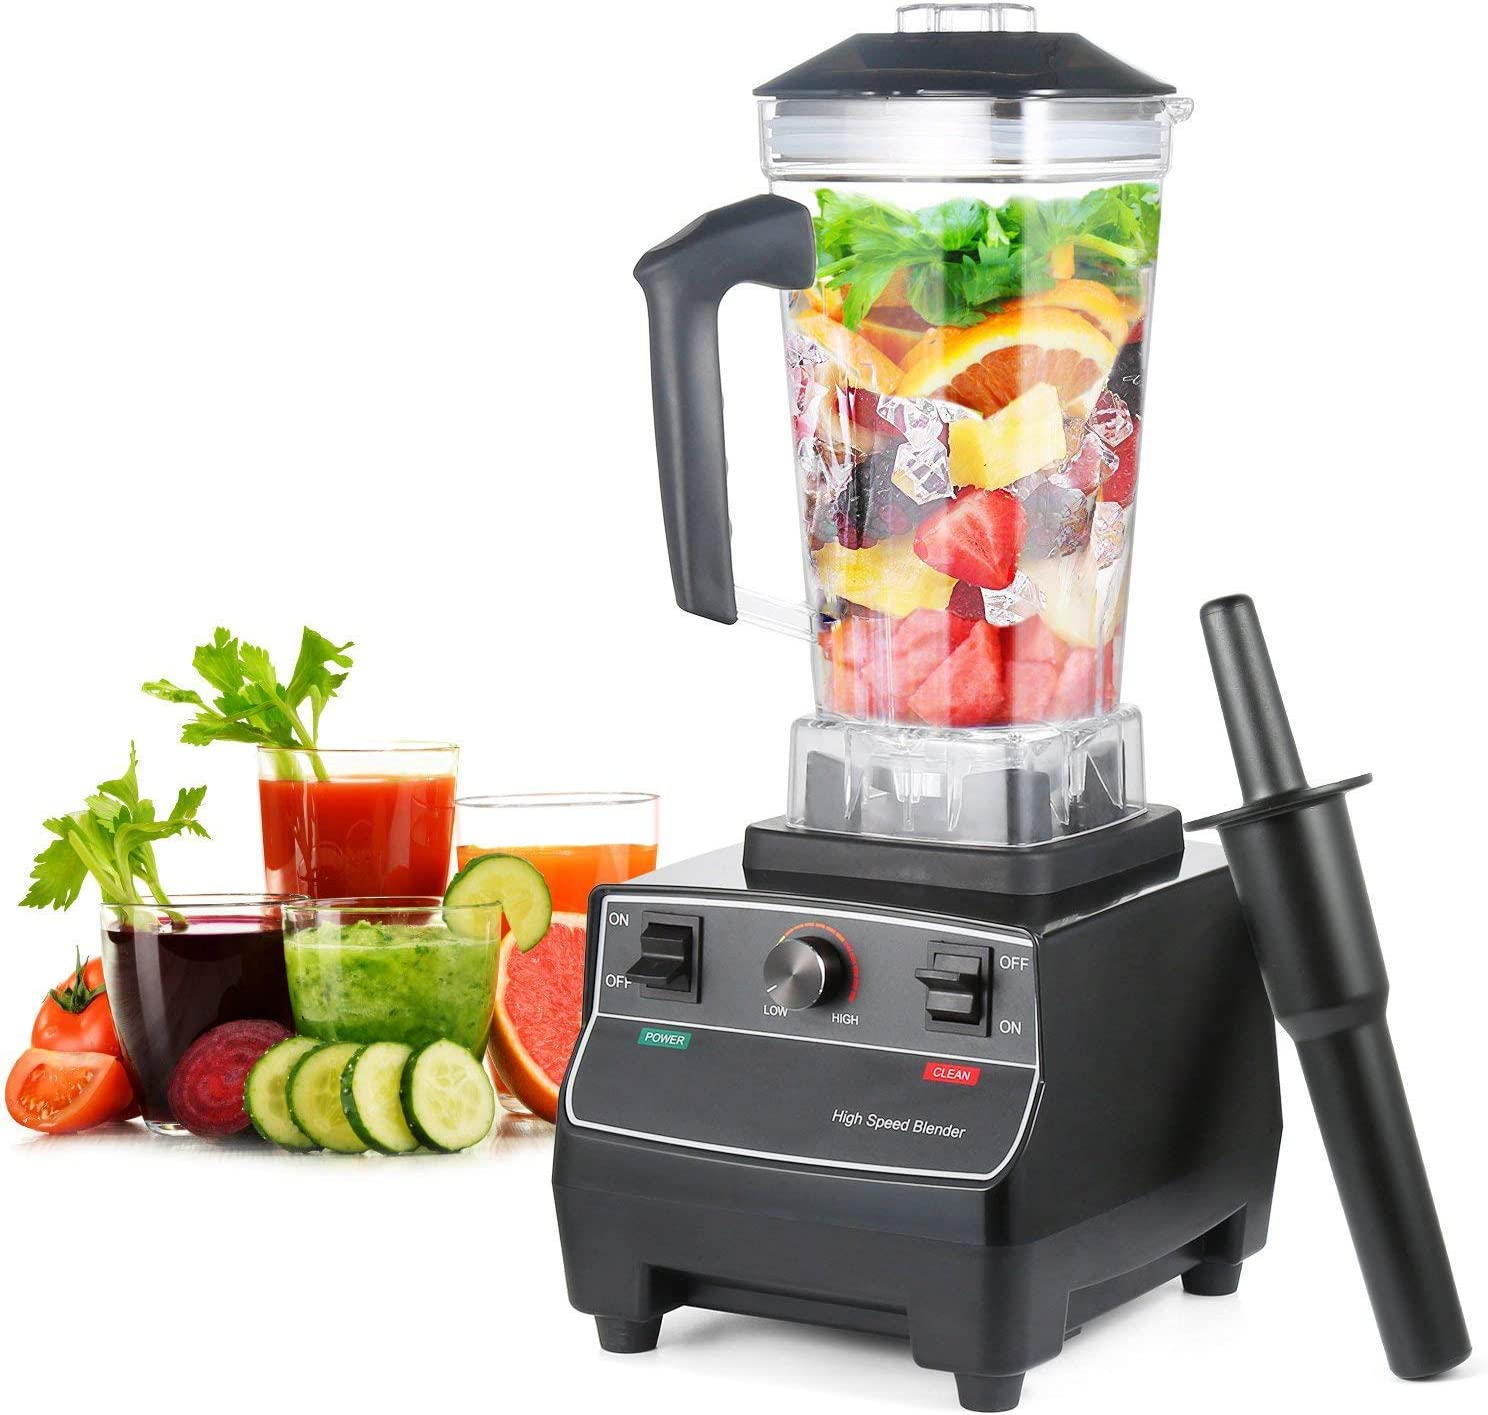 Blender Mixer Smoothie Blender 67 Ounce Ice Crusher BPA Free Jar Variable Speed 1800 Watt Motor Comes With a Tamper Professional-Grade for Home Use